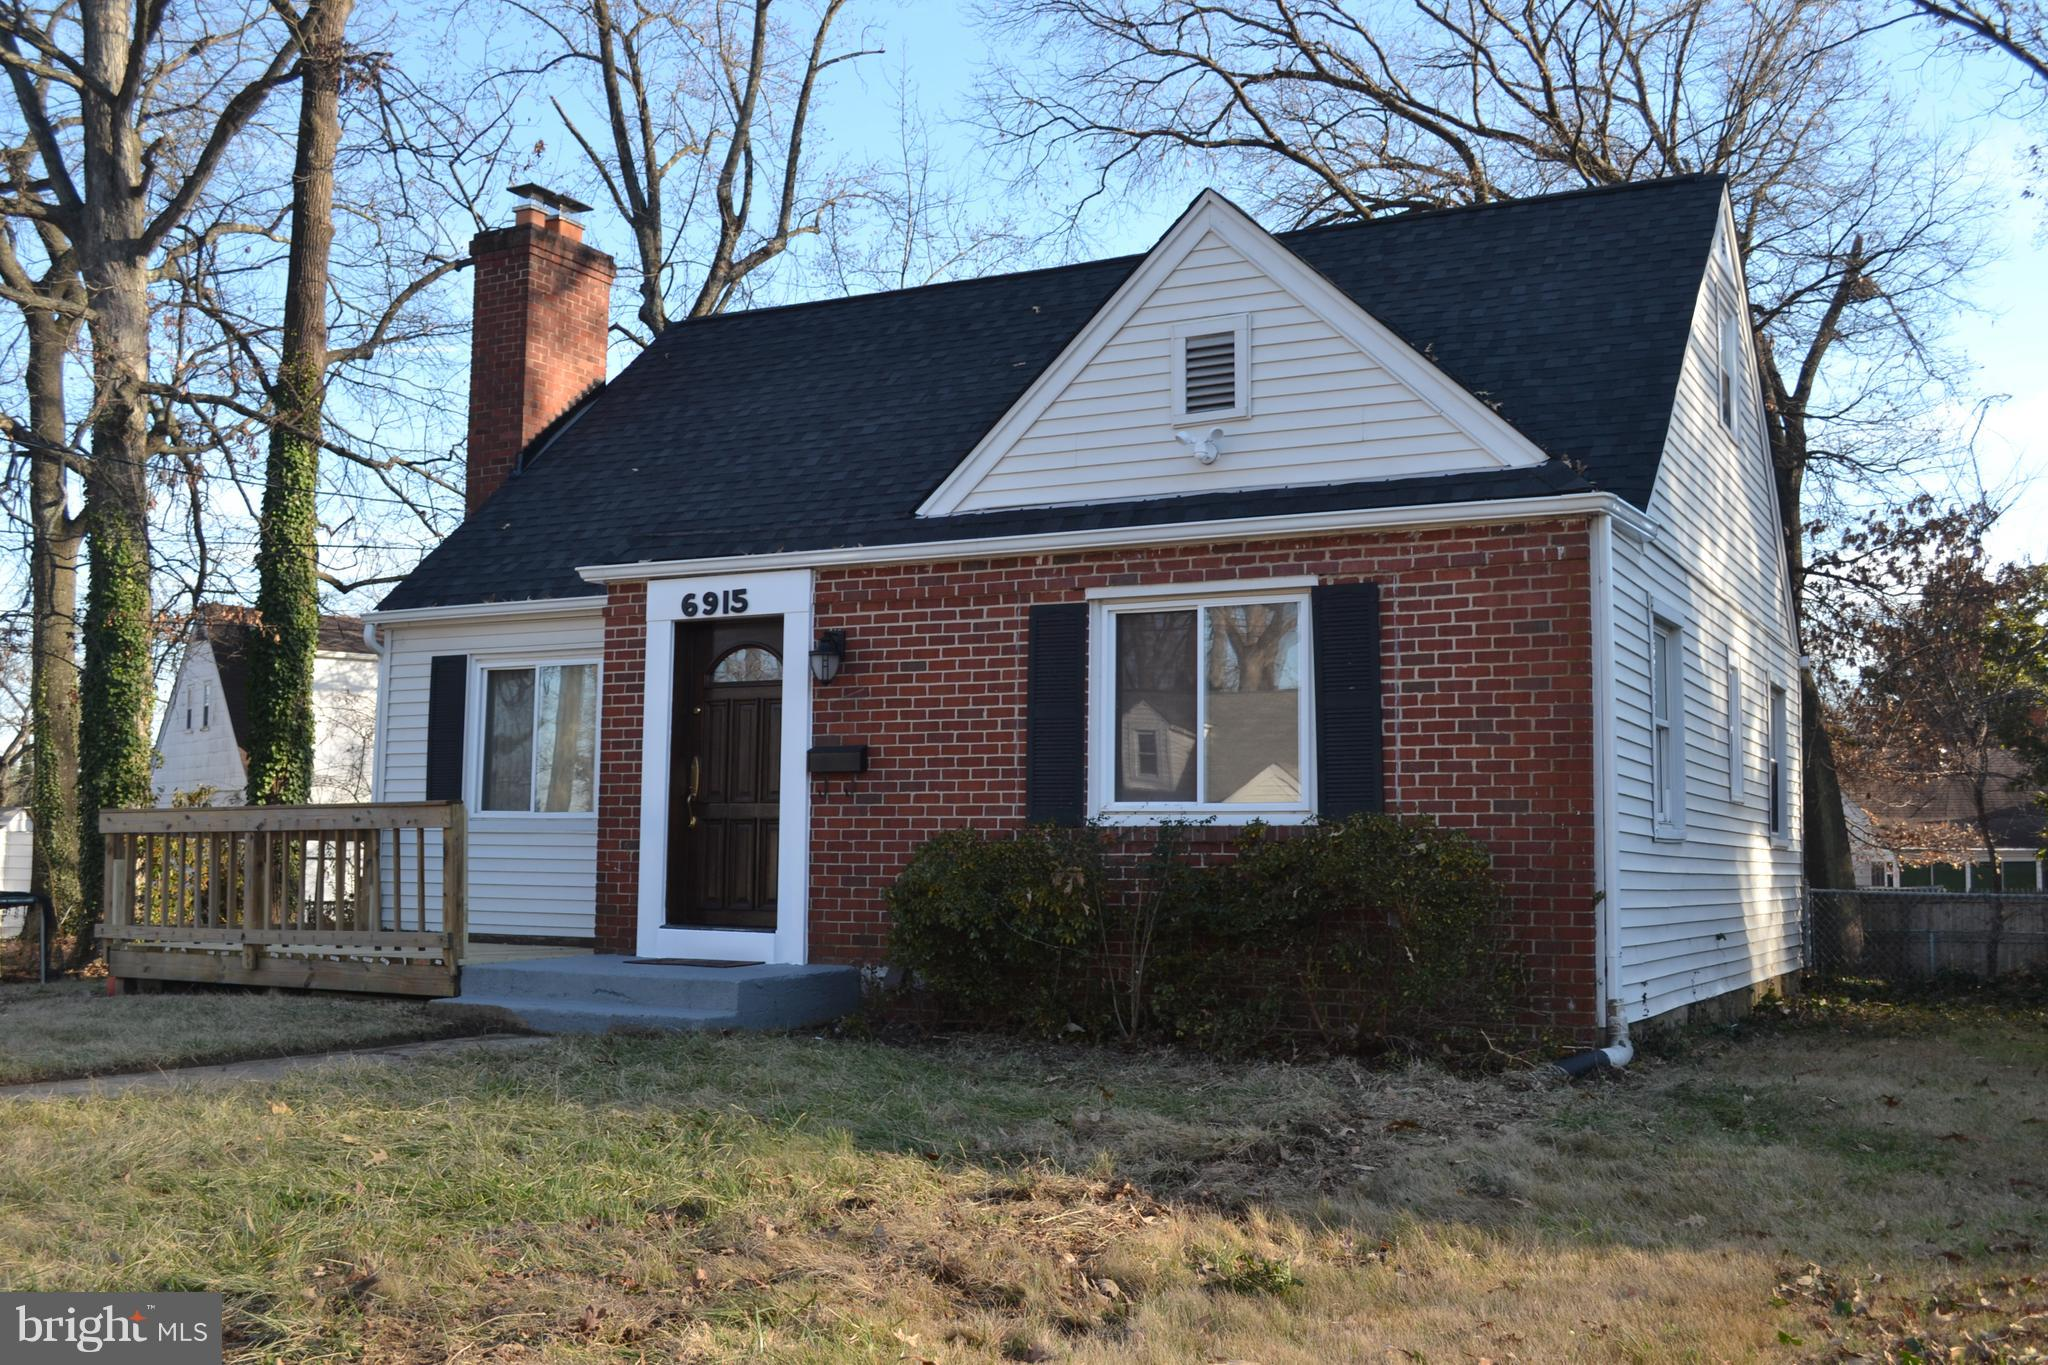 6915 FOSTER STREET, DISTRICT HEIGHTS, MD 20747